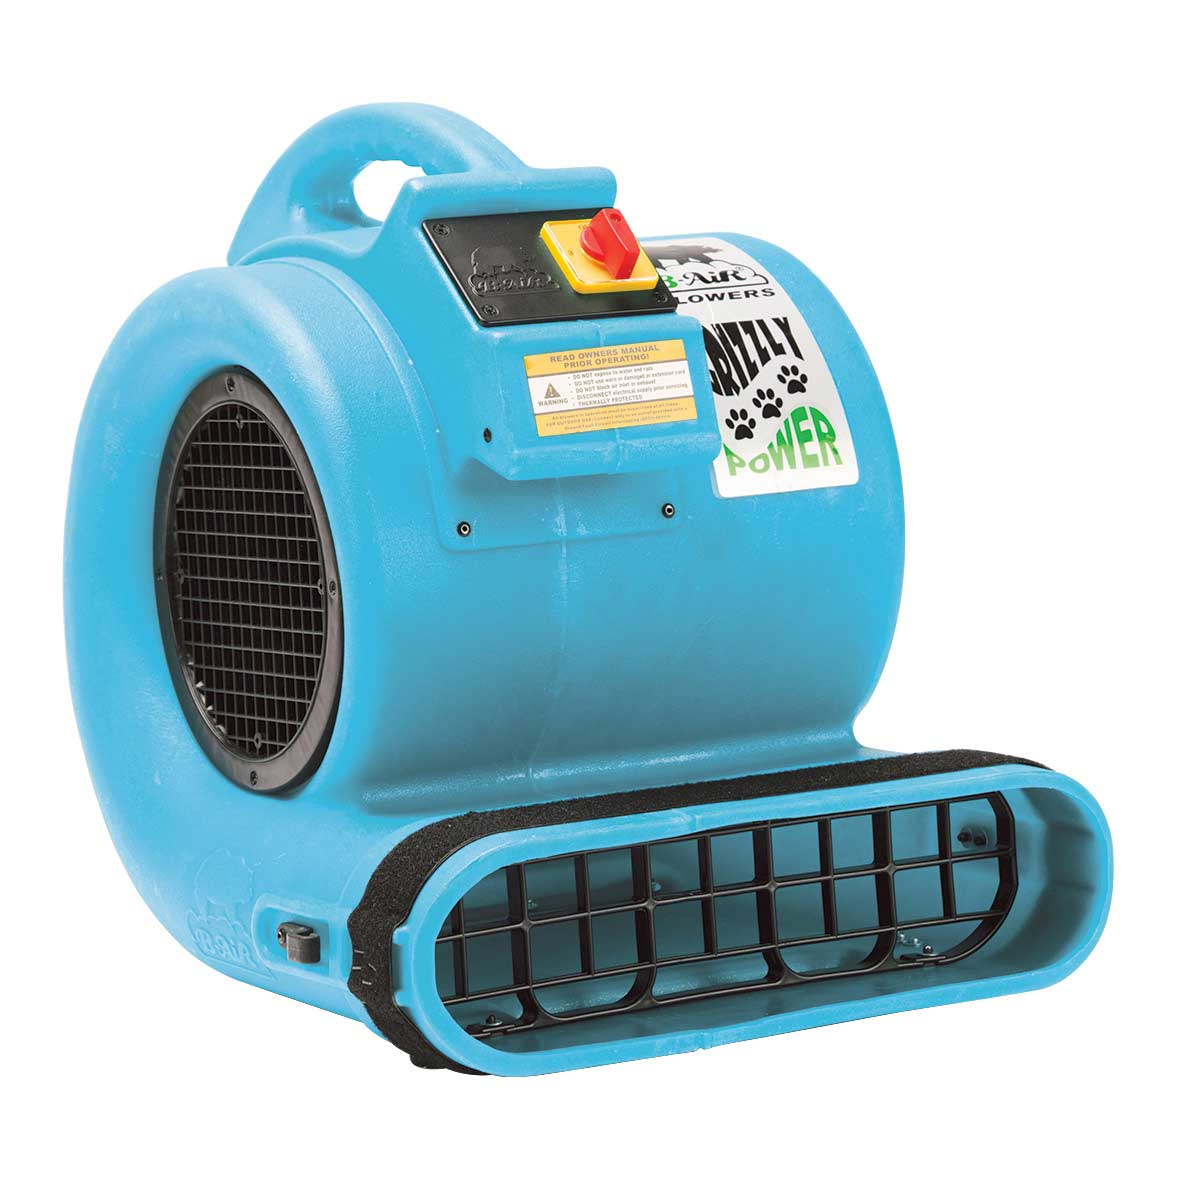 ETL Turquoise Grizzly B-Air Professional Grooming Cage Dryer